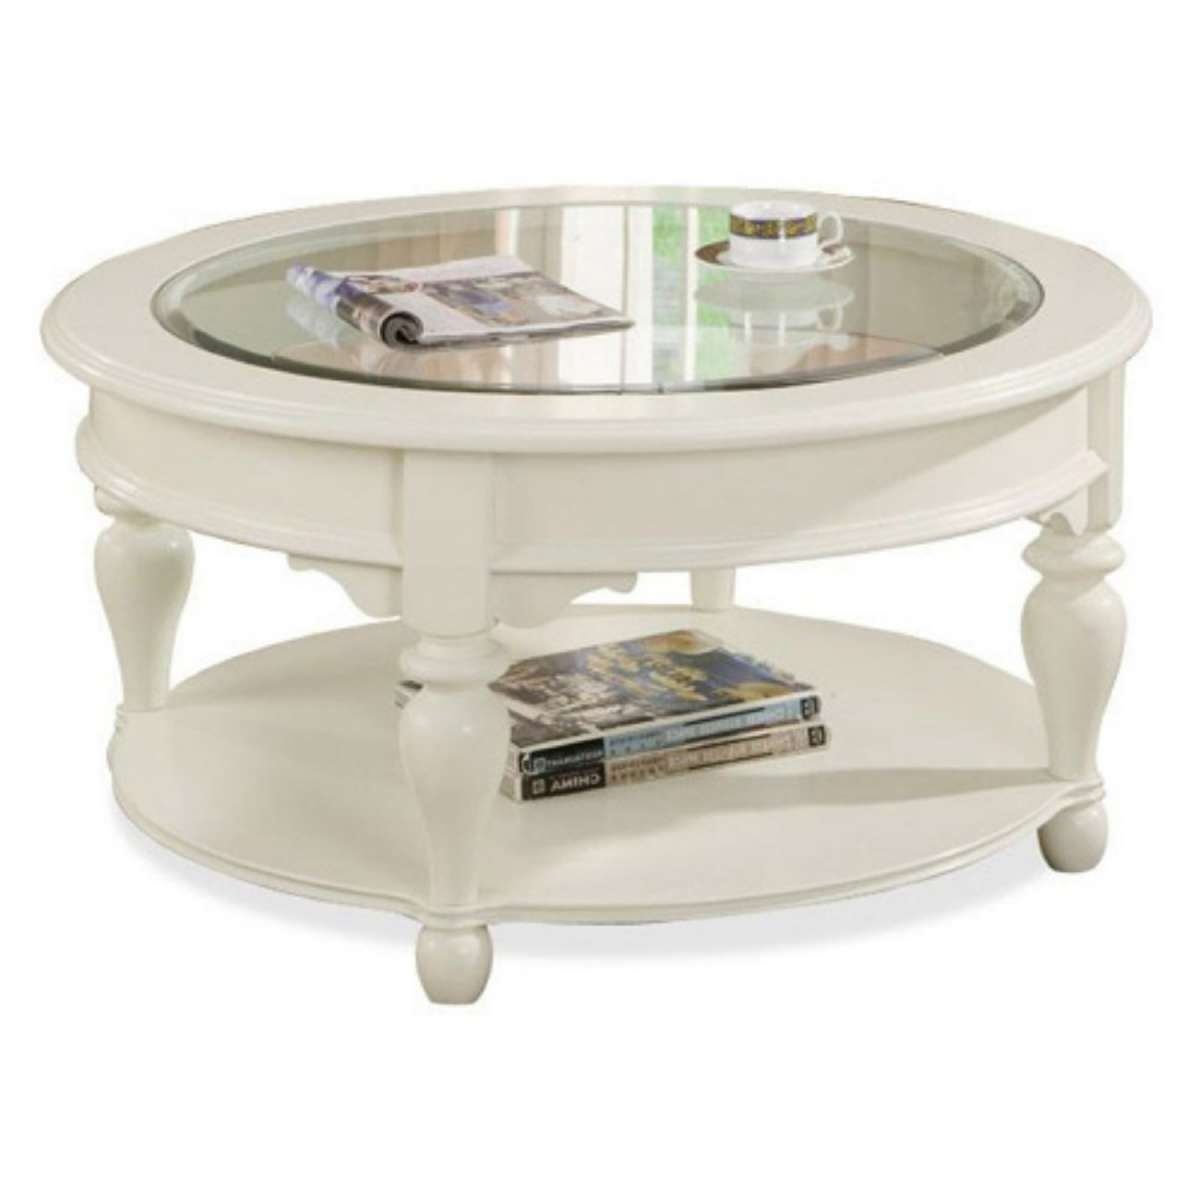 Coffee Table : Round Coffee Table Set In Wood Glass Sets Oak With Recent White Wood And Glass Coffee Tables (View 5 of 20)